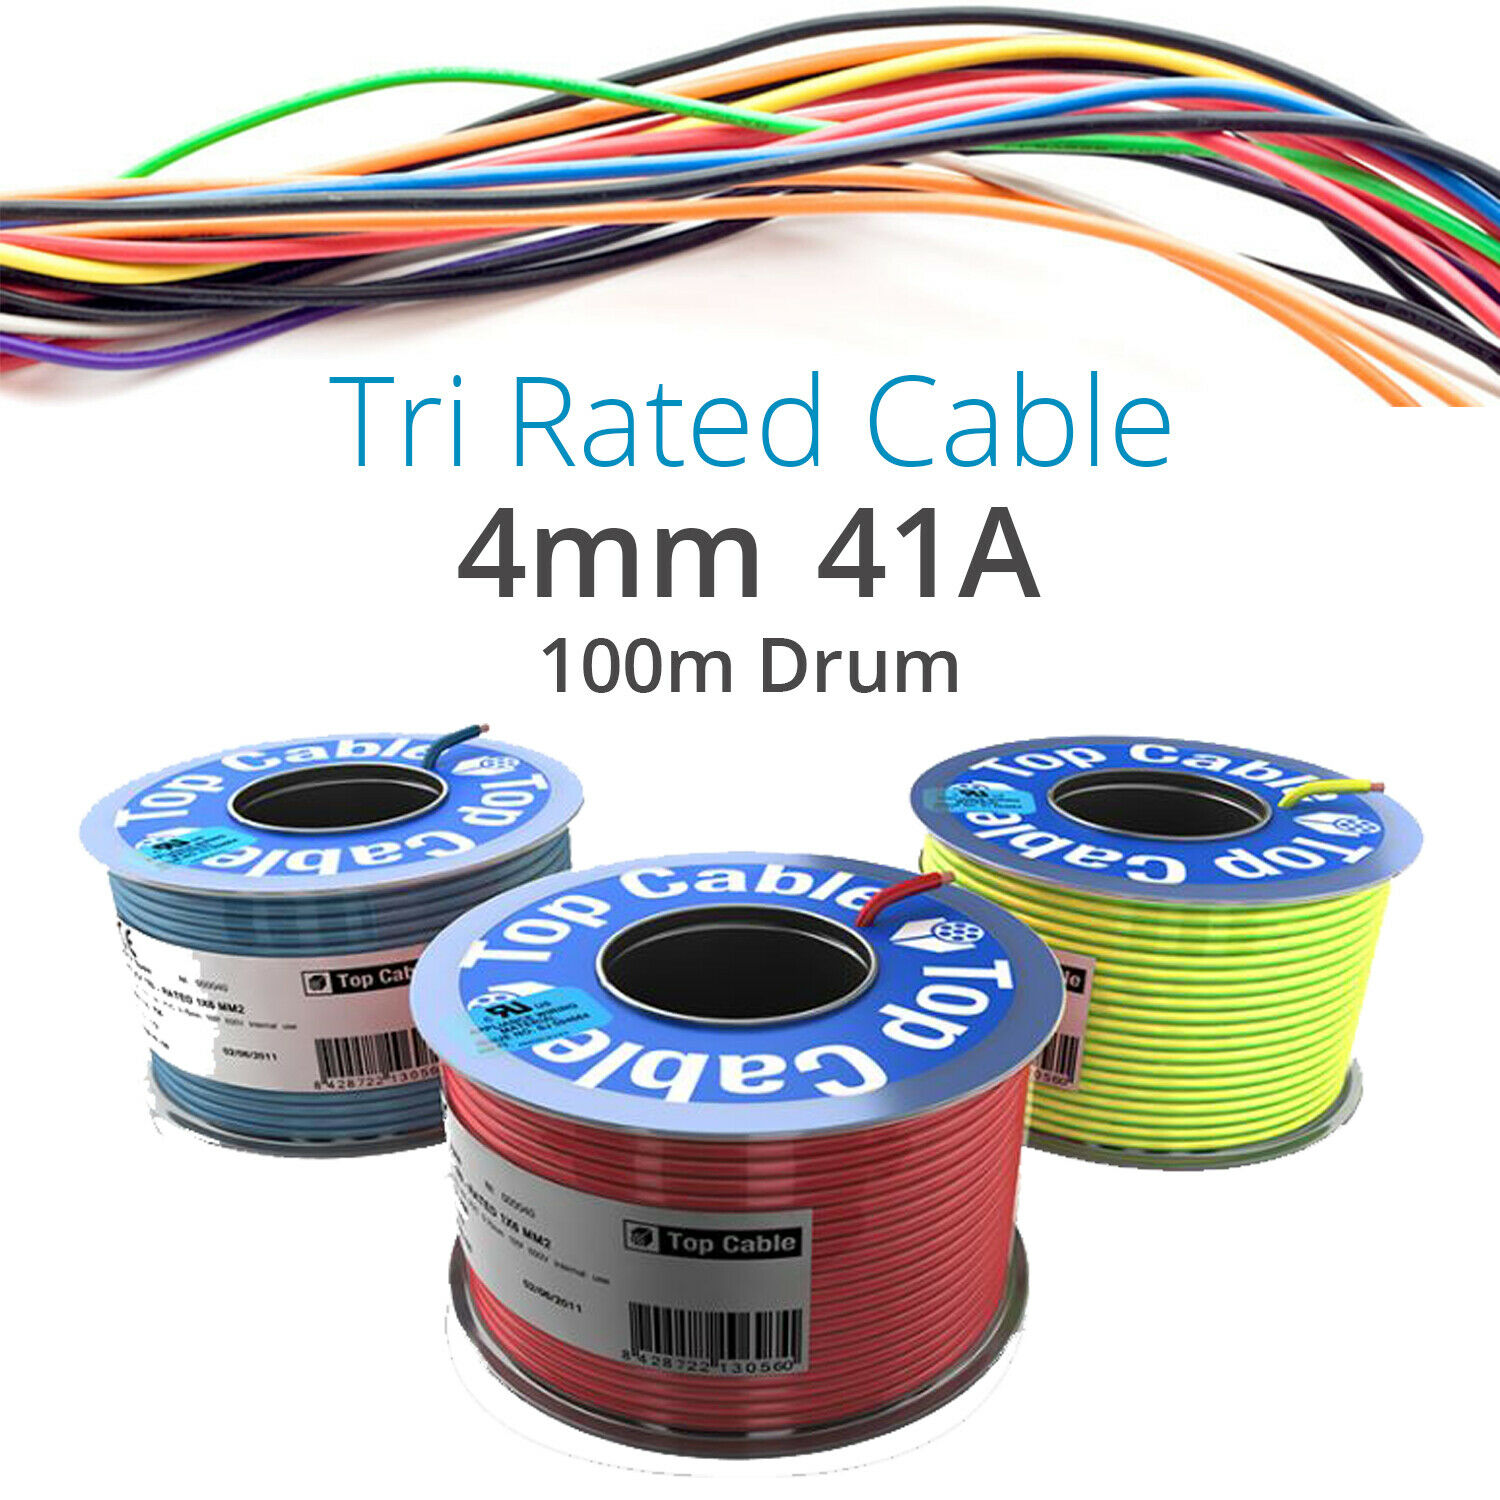 Details about ALL COLOURS 4mm 41AMP Tri Rated Cable Panel Wiring Loom on automotive electronics, automotive body, automotive brakes, automotive diagrams, automotive software, automotive springs, automotive electrical, automotive maintenance, automotive tires, automotive components, automotive bearings, automotive upholstery, automotive electricity, automotive glass, automotive hoses, automotive air conditioning, automotive cables, automotive arduino, automotive insulation, automotive switch,